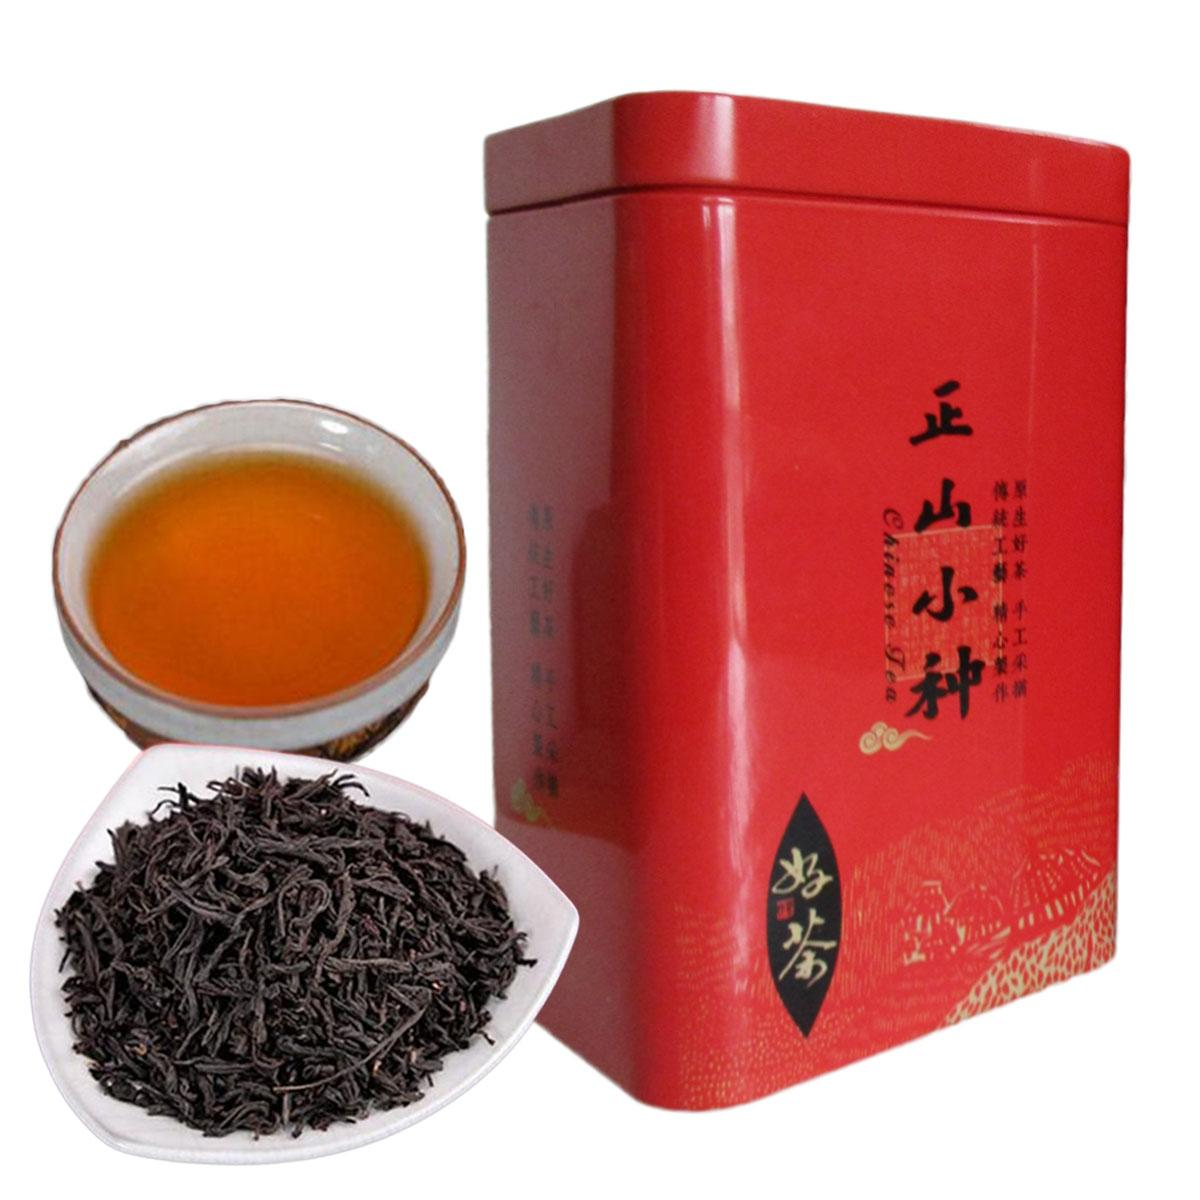 Net Weight 100g Chinese Organic Black Tea Lapsang Souchong Superior Oolong Tea Health Care New Cooked Tea Gift Package Green Food Promotion